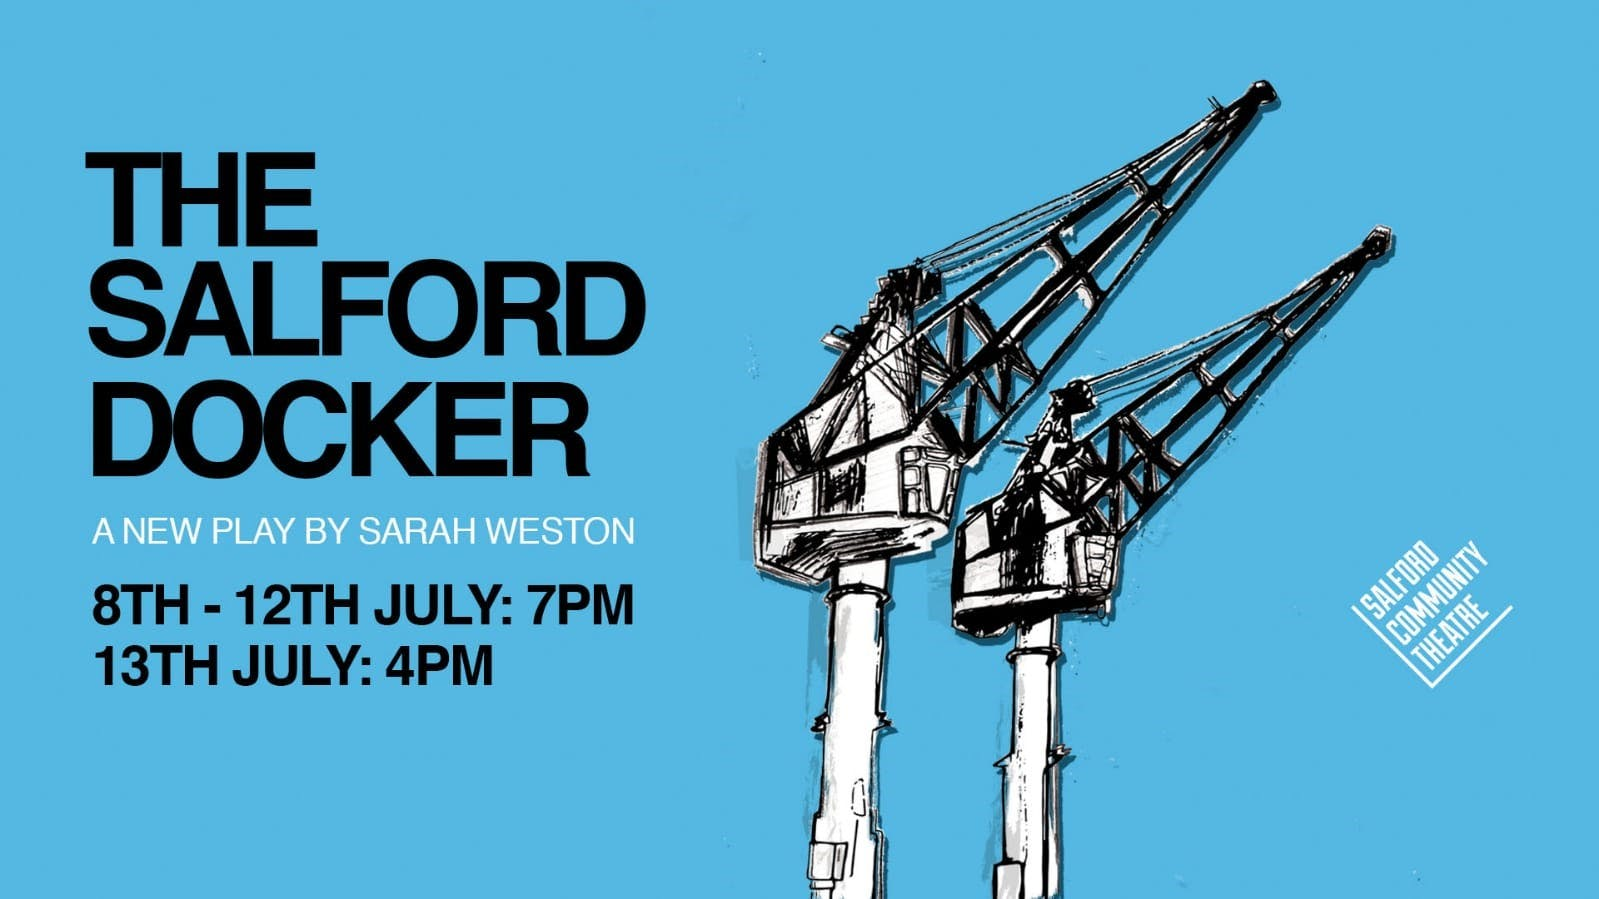 Salford Community Theatre present their newest community play – The Salford Docker!